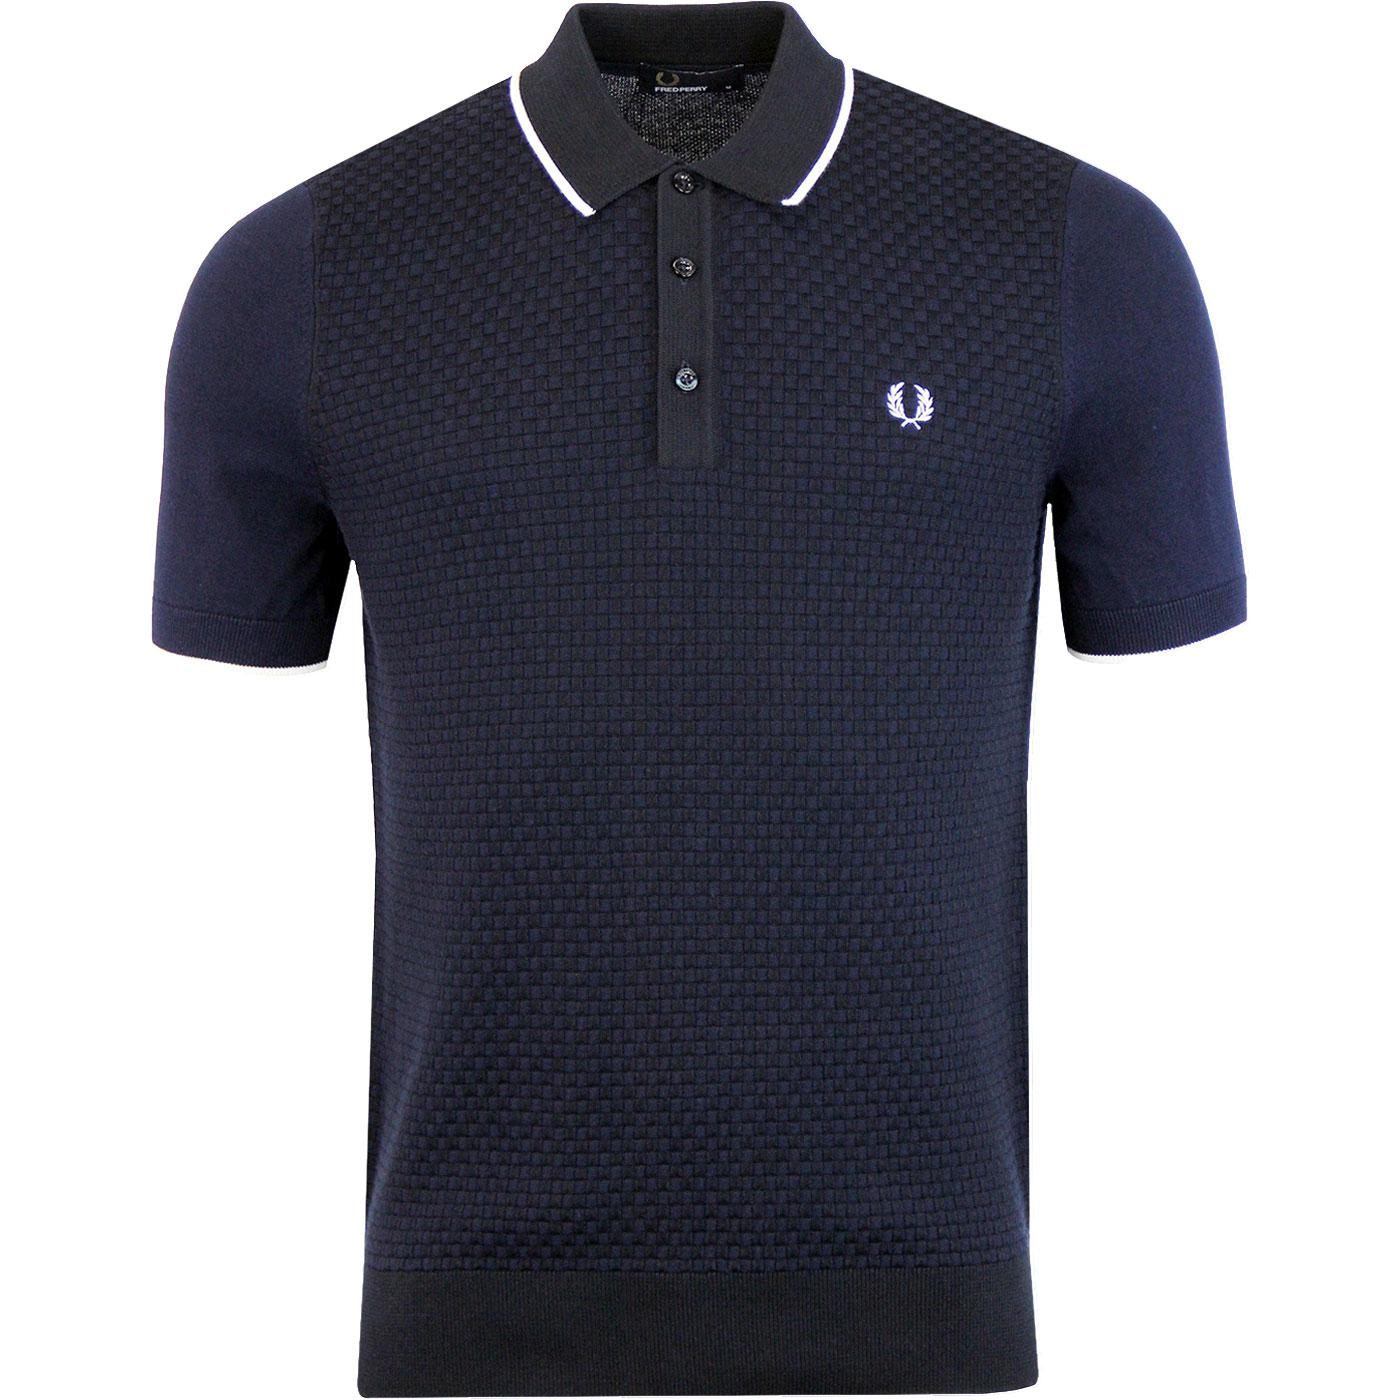 FRED PERRY Retro Textured Knit Two tone Mod Polo